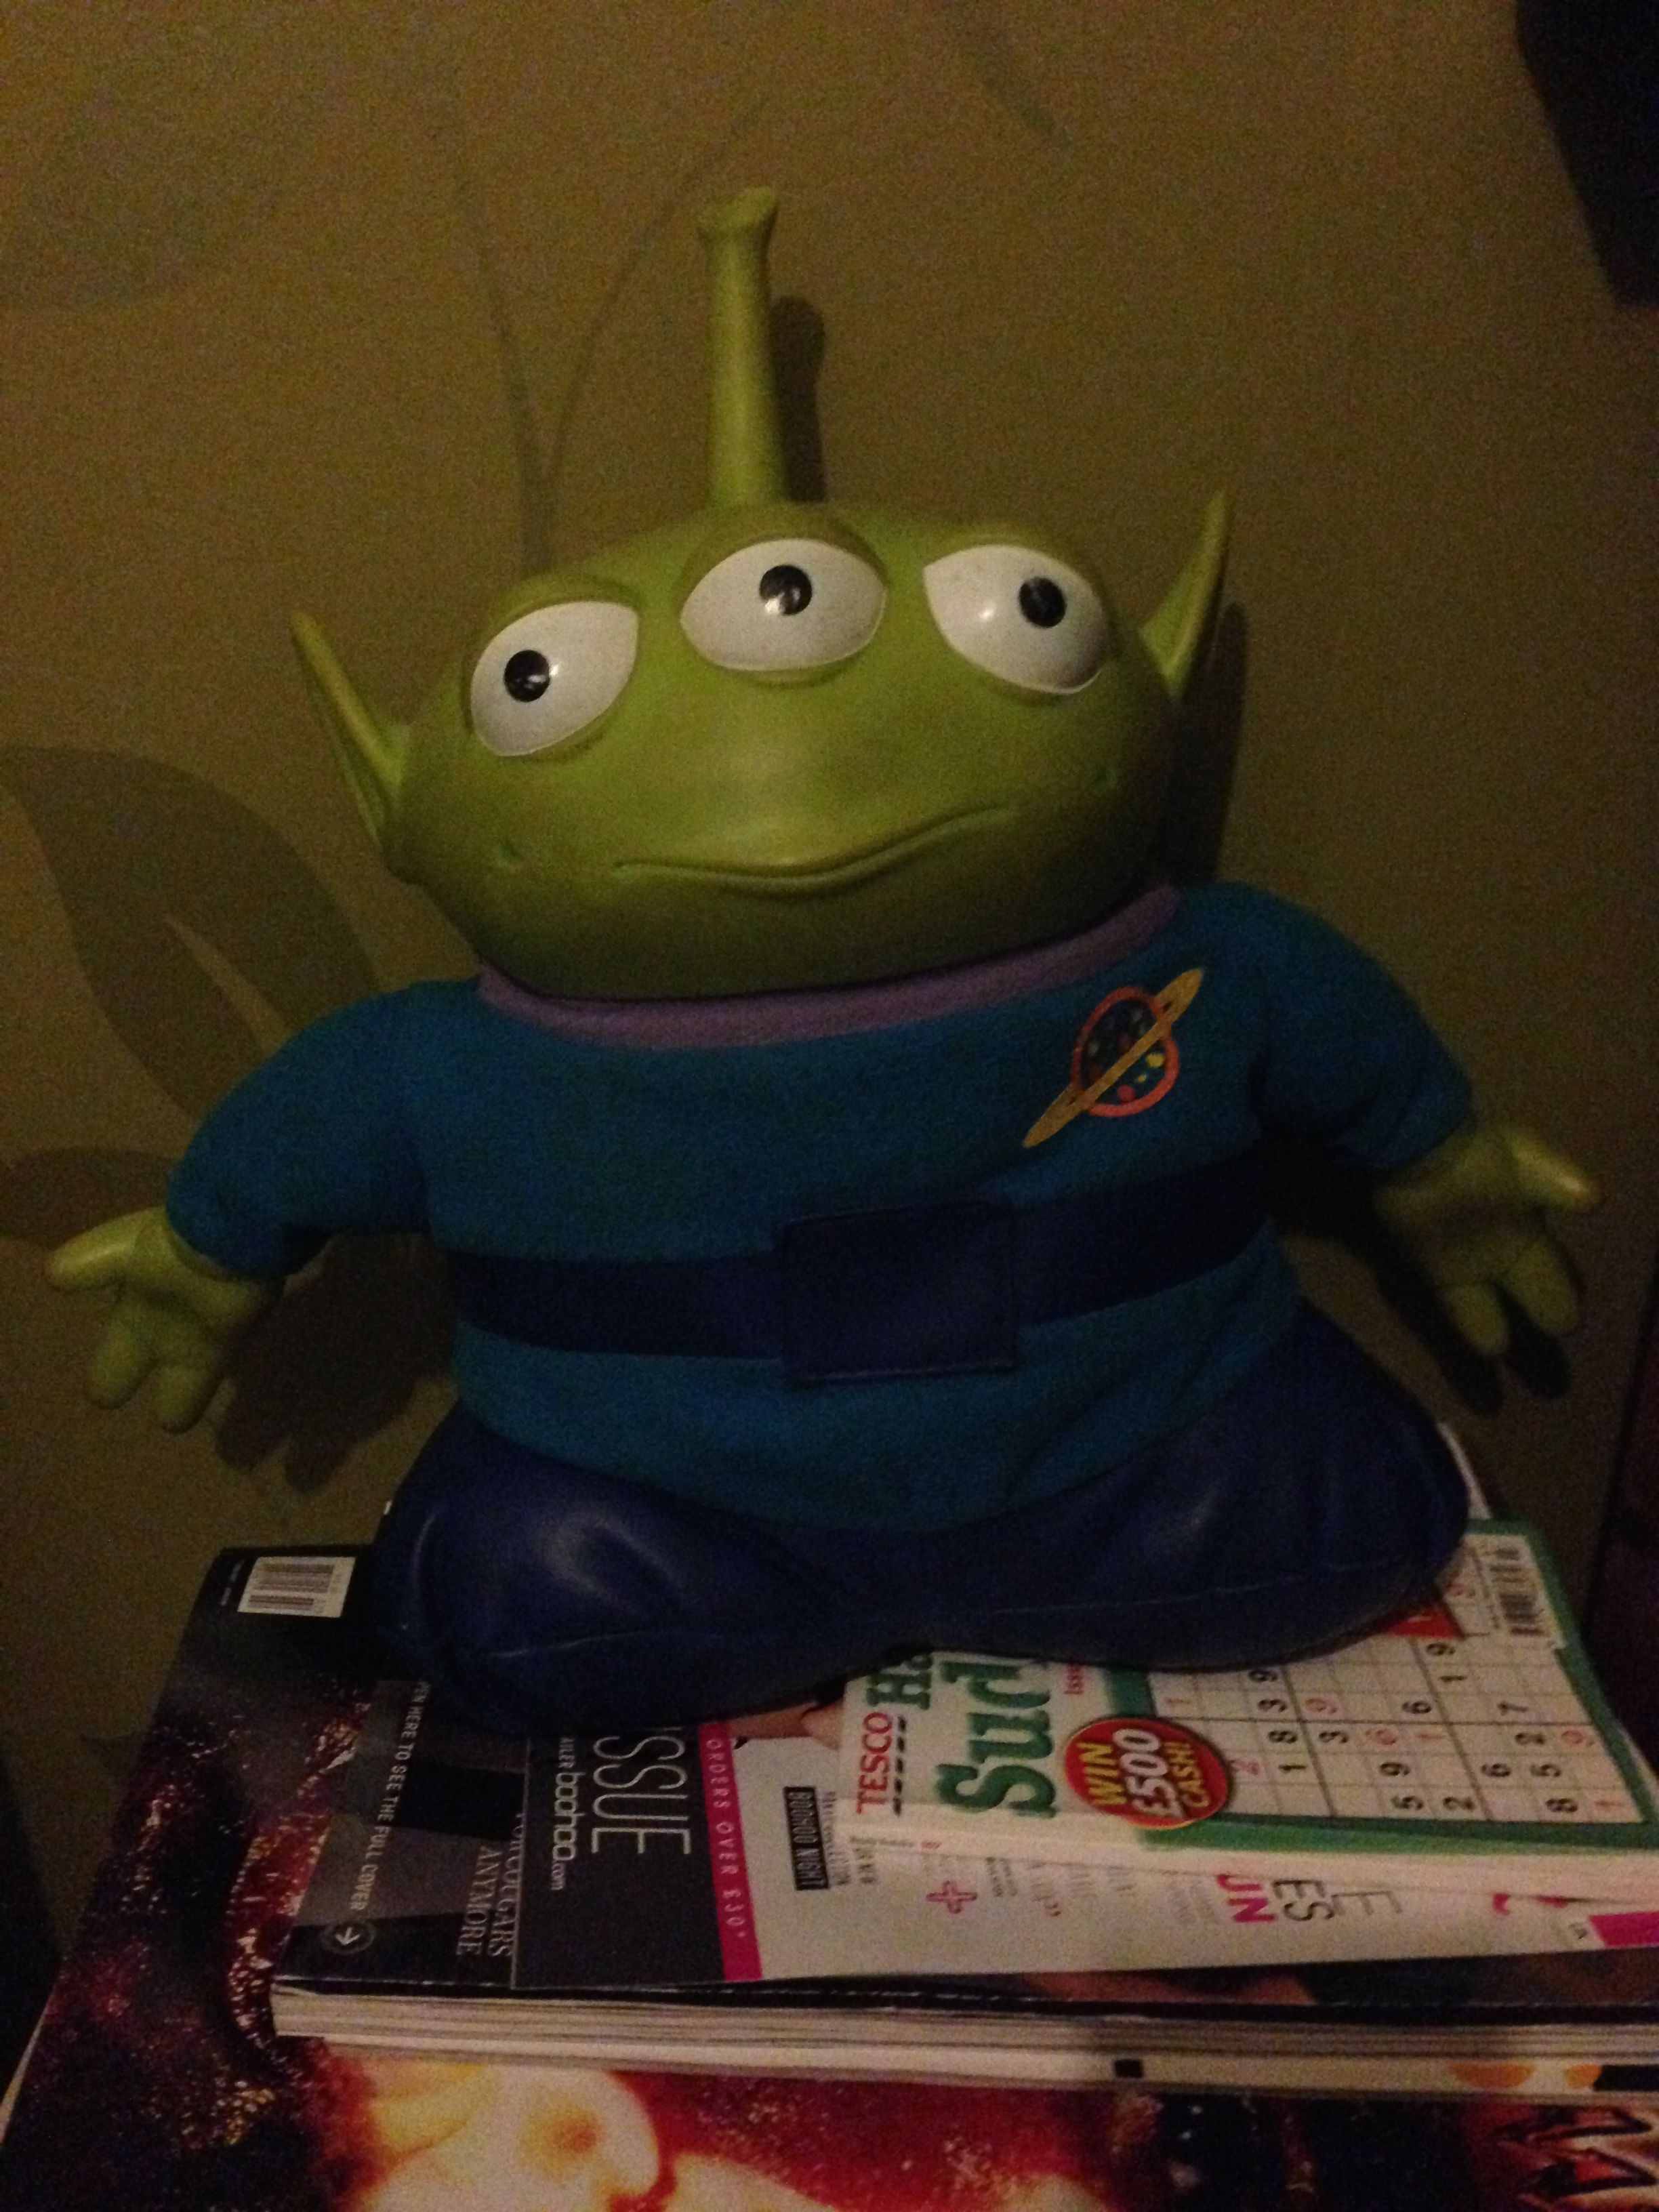 O - Object - My Alien from Toy Story. I've had him since I was 6, he's got a lightbulb in his antenna and he speaks and he still works nearly 20 years later!